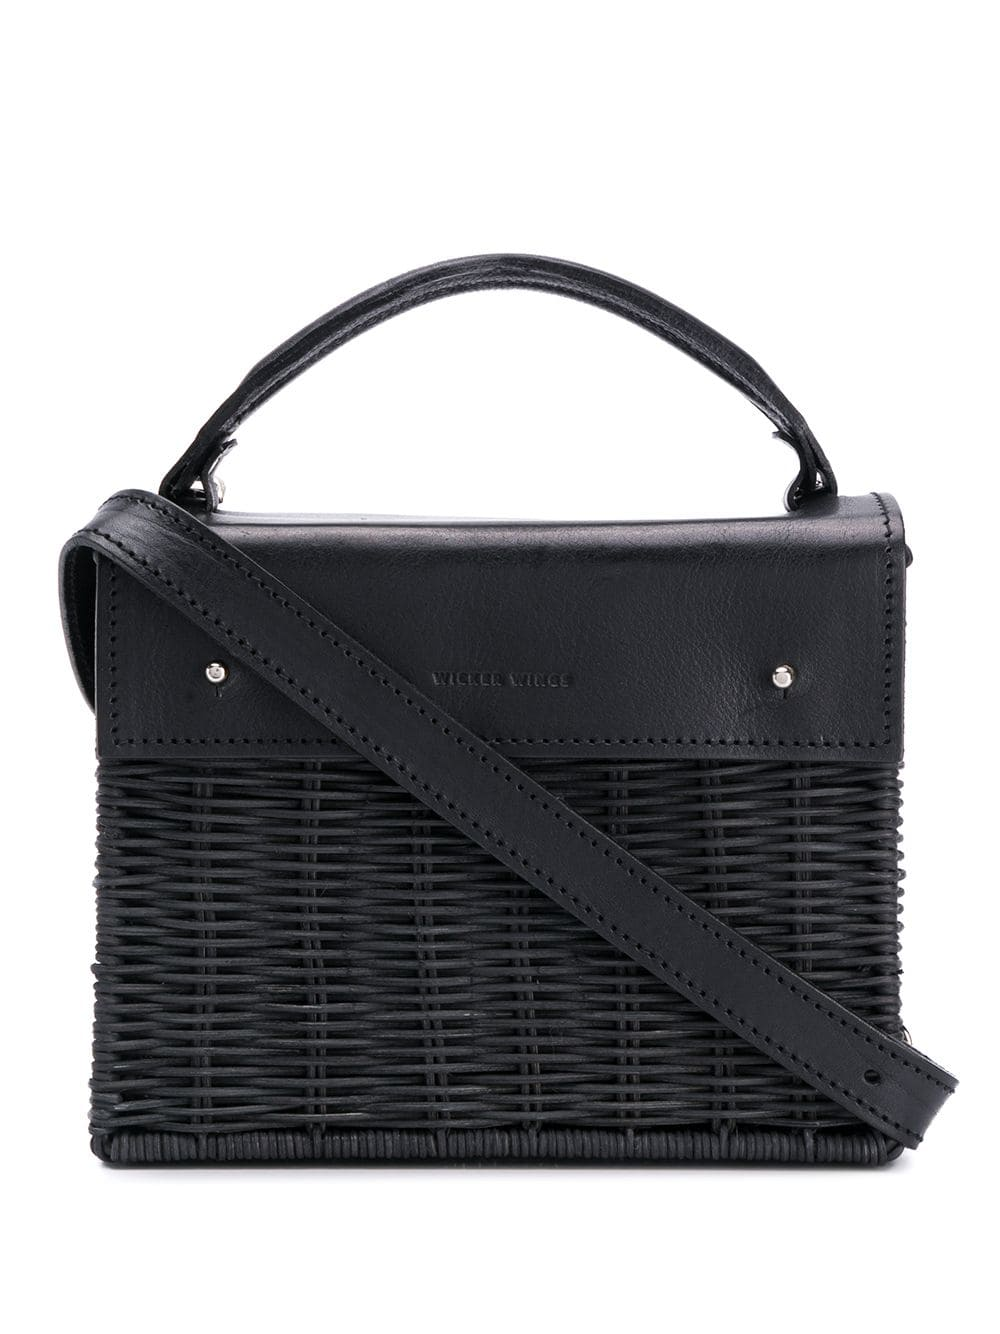 Top handle. Detachable strap. Fully lined with an interior with 1 pocket.